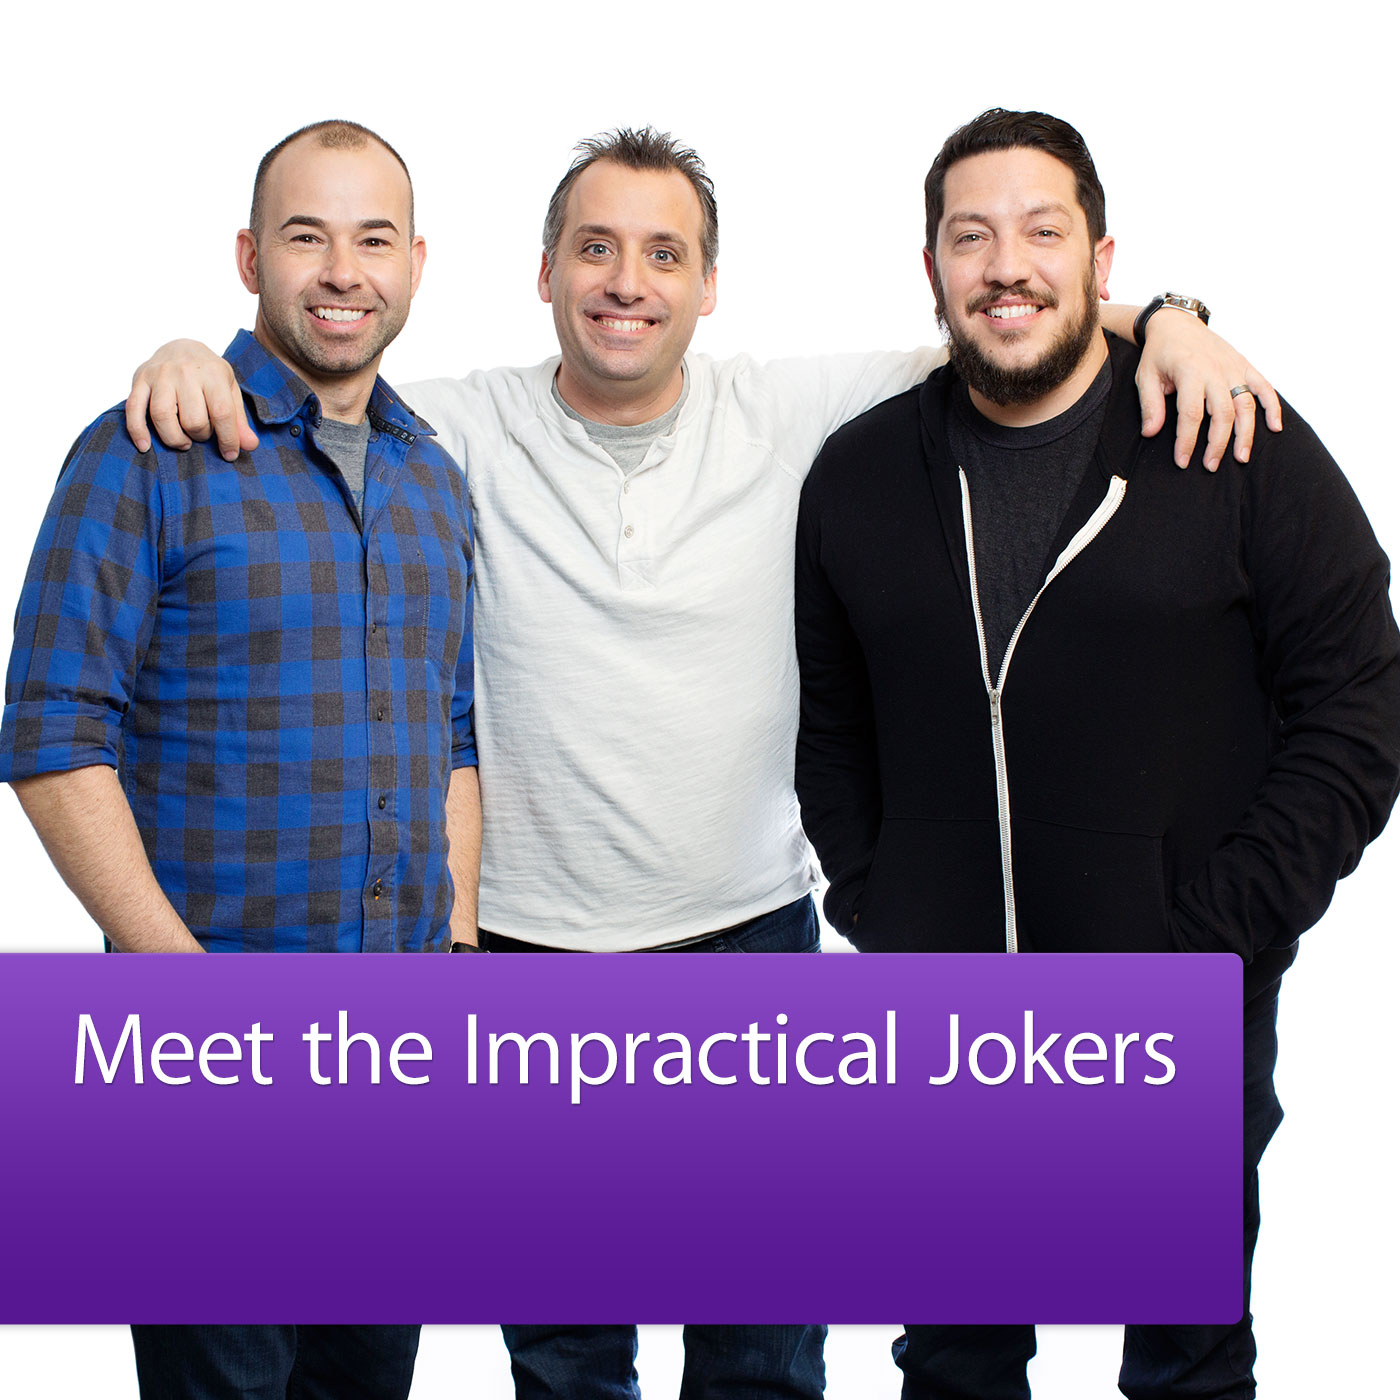 Impractical Jokers: Meet the Cast